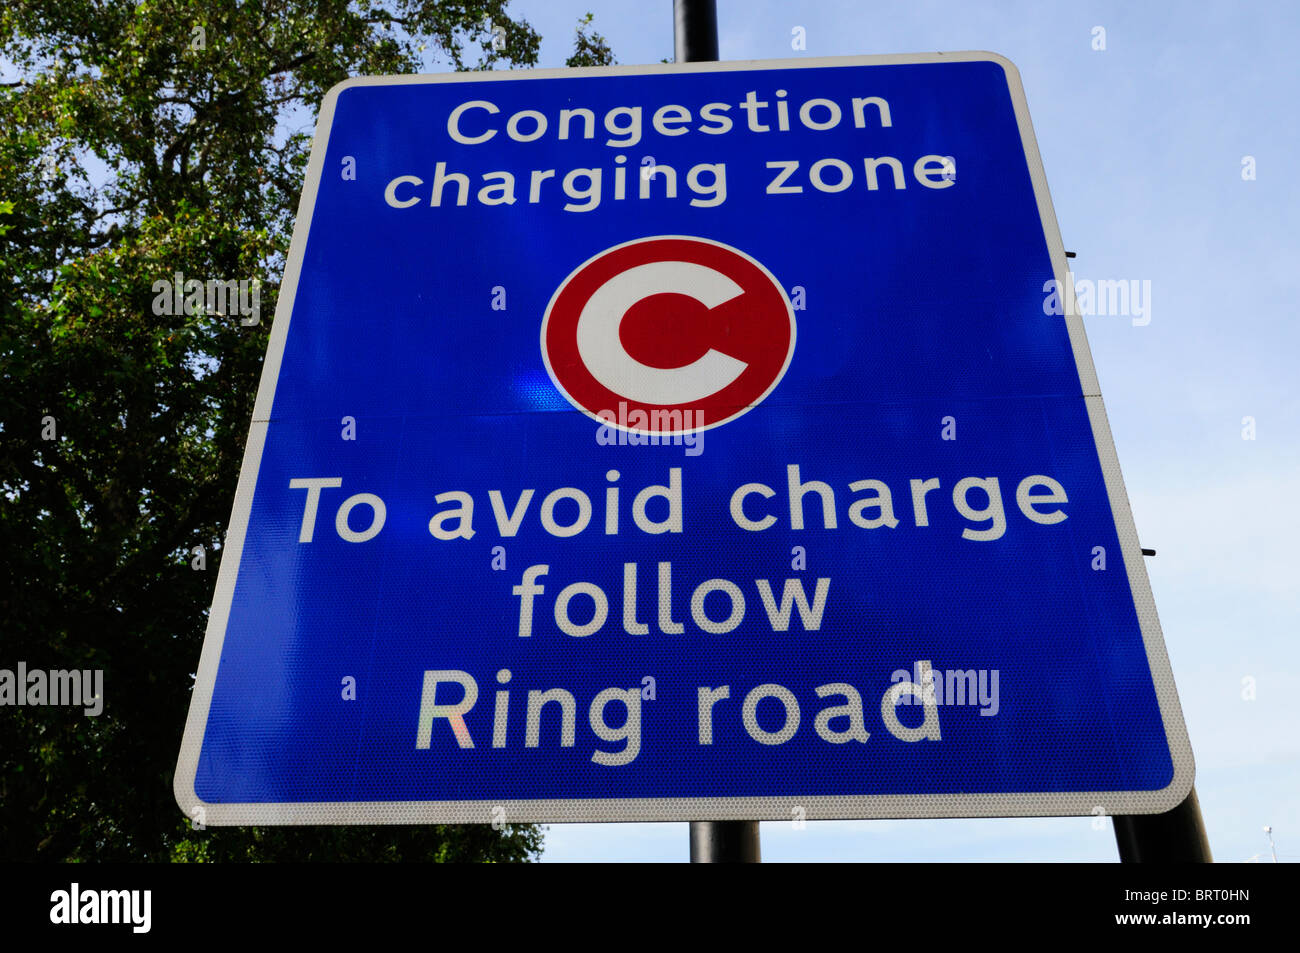 Congestion Charging zone, To Avoid Charge Follow Ring Road sign, Westminster, London, England, UK - Stock Image